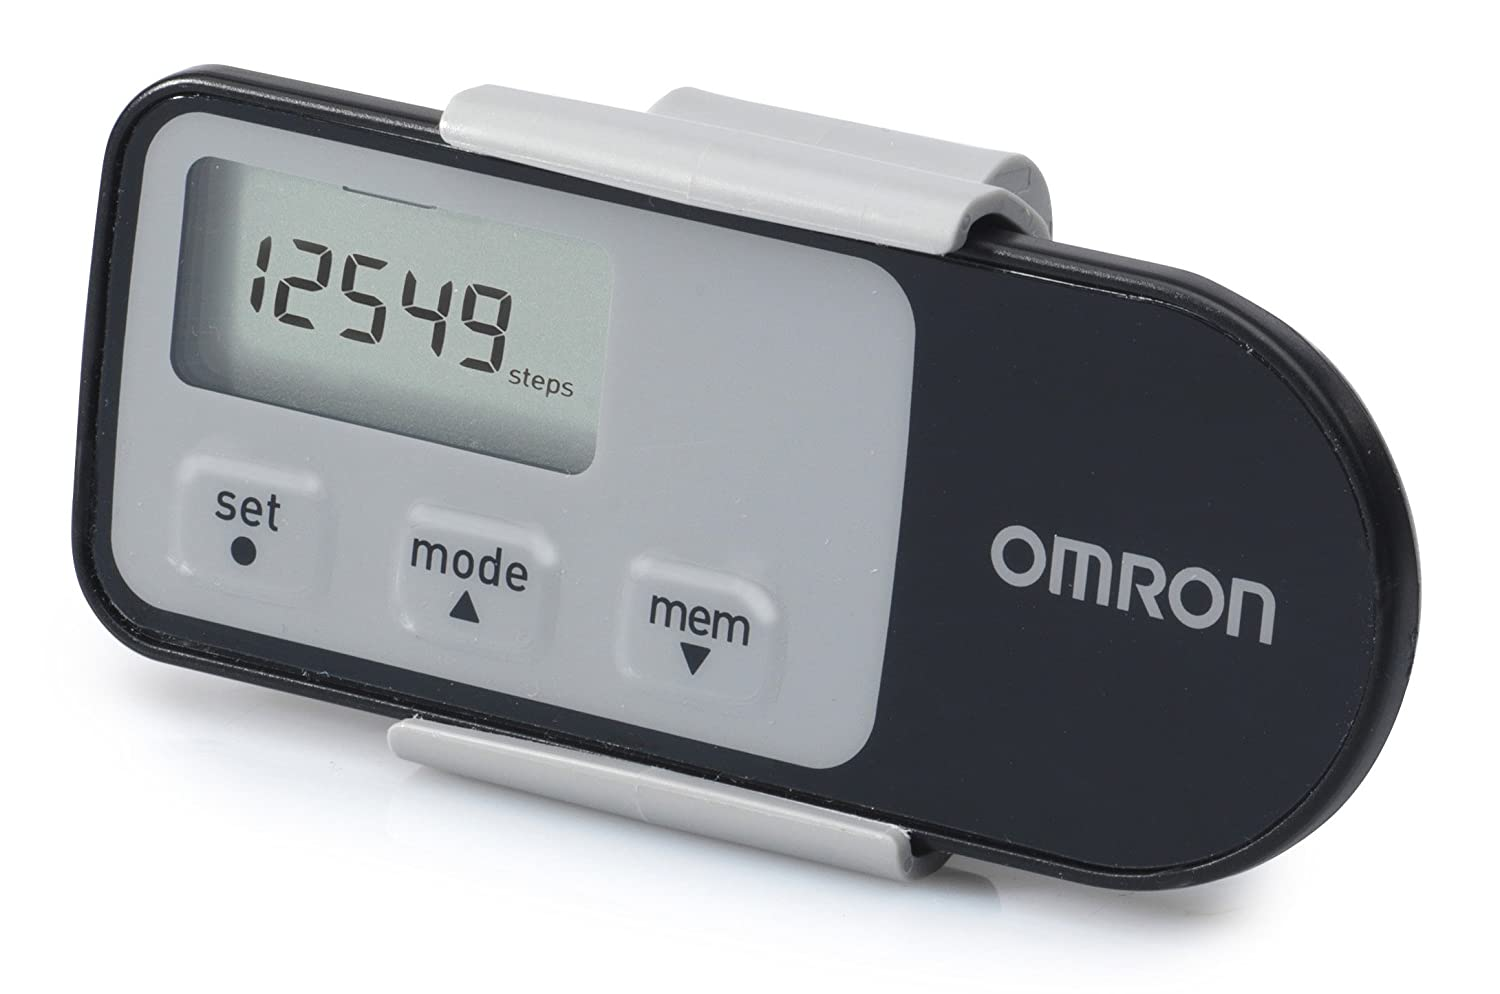 OMRON Walking Style One 2.1 - Podómetro, color negro: Amazon.es: Salud y cuidado personal